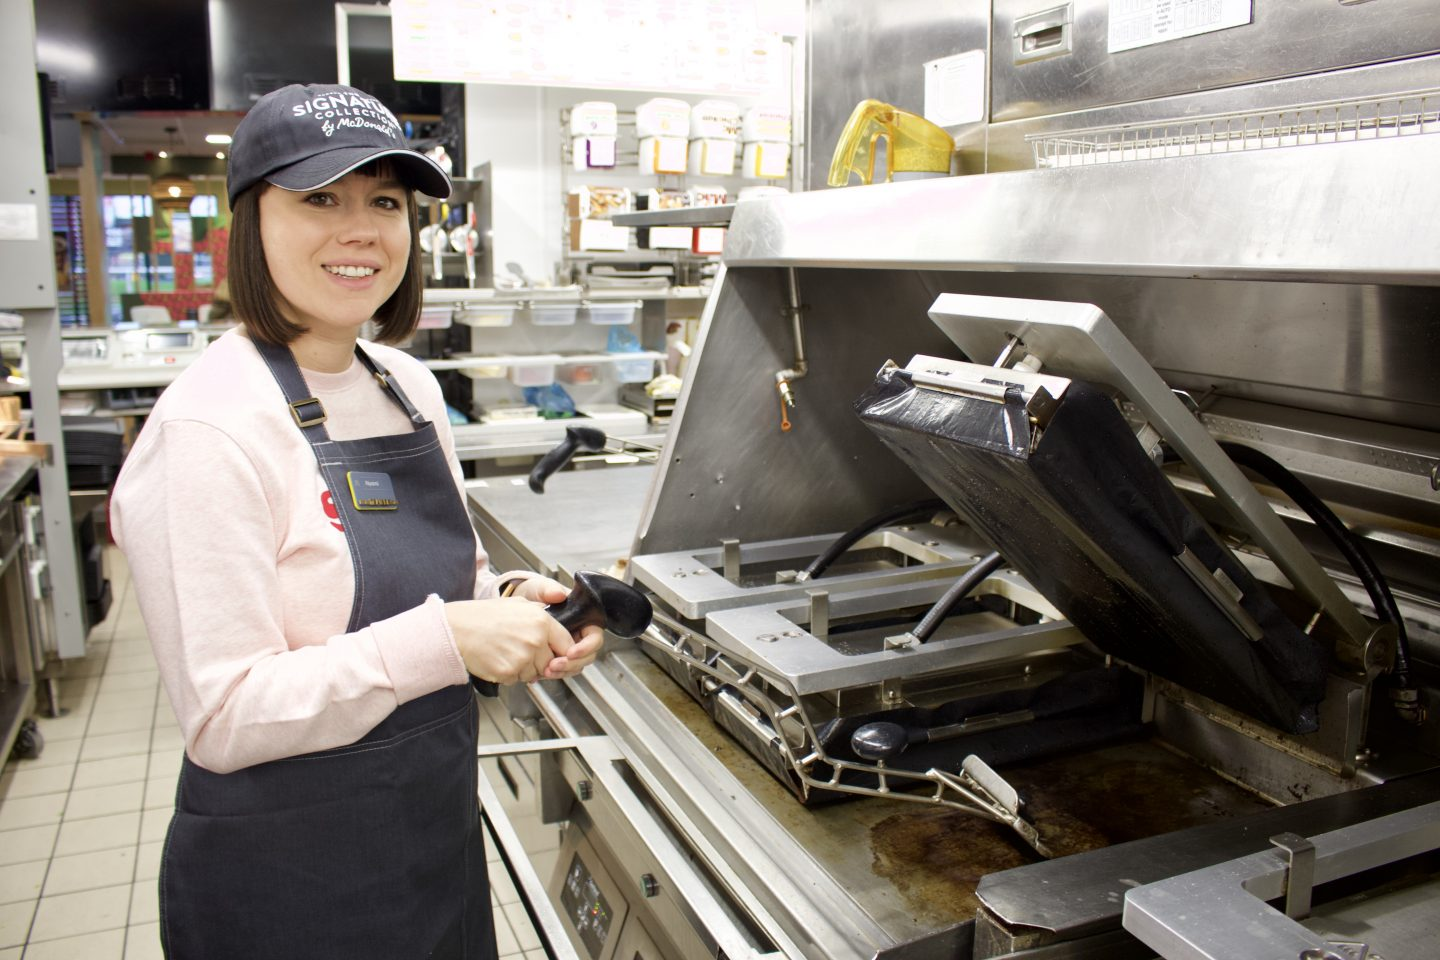 13 surprising new things I discovered going behind the scenes at McDonald's…